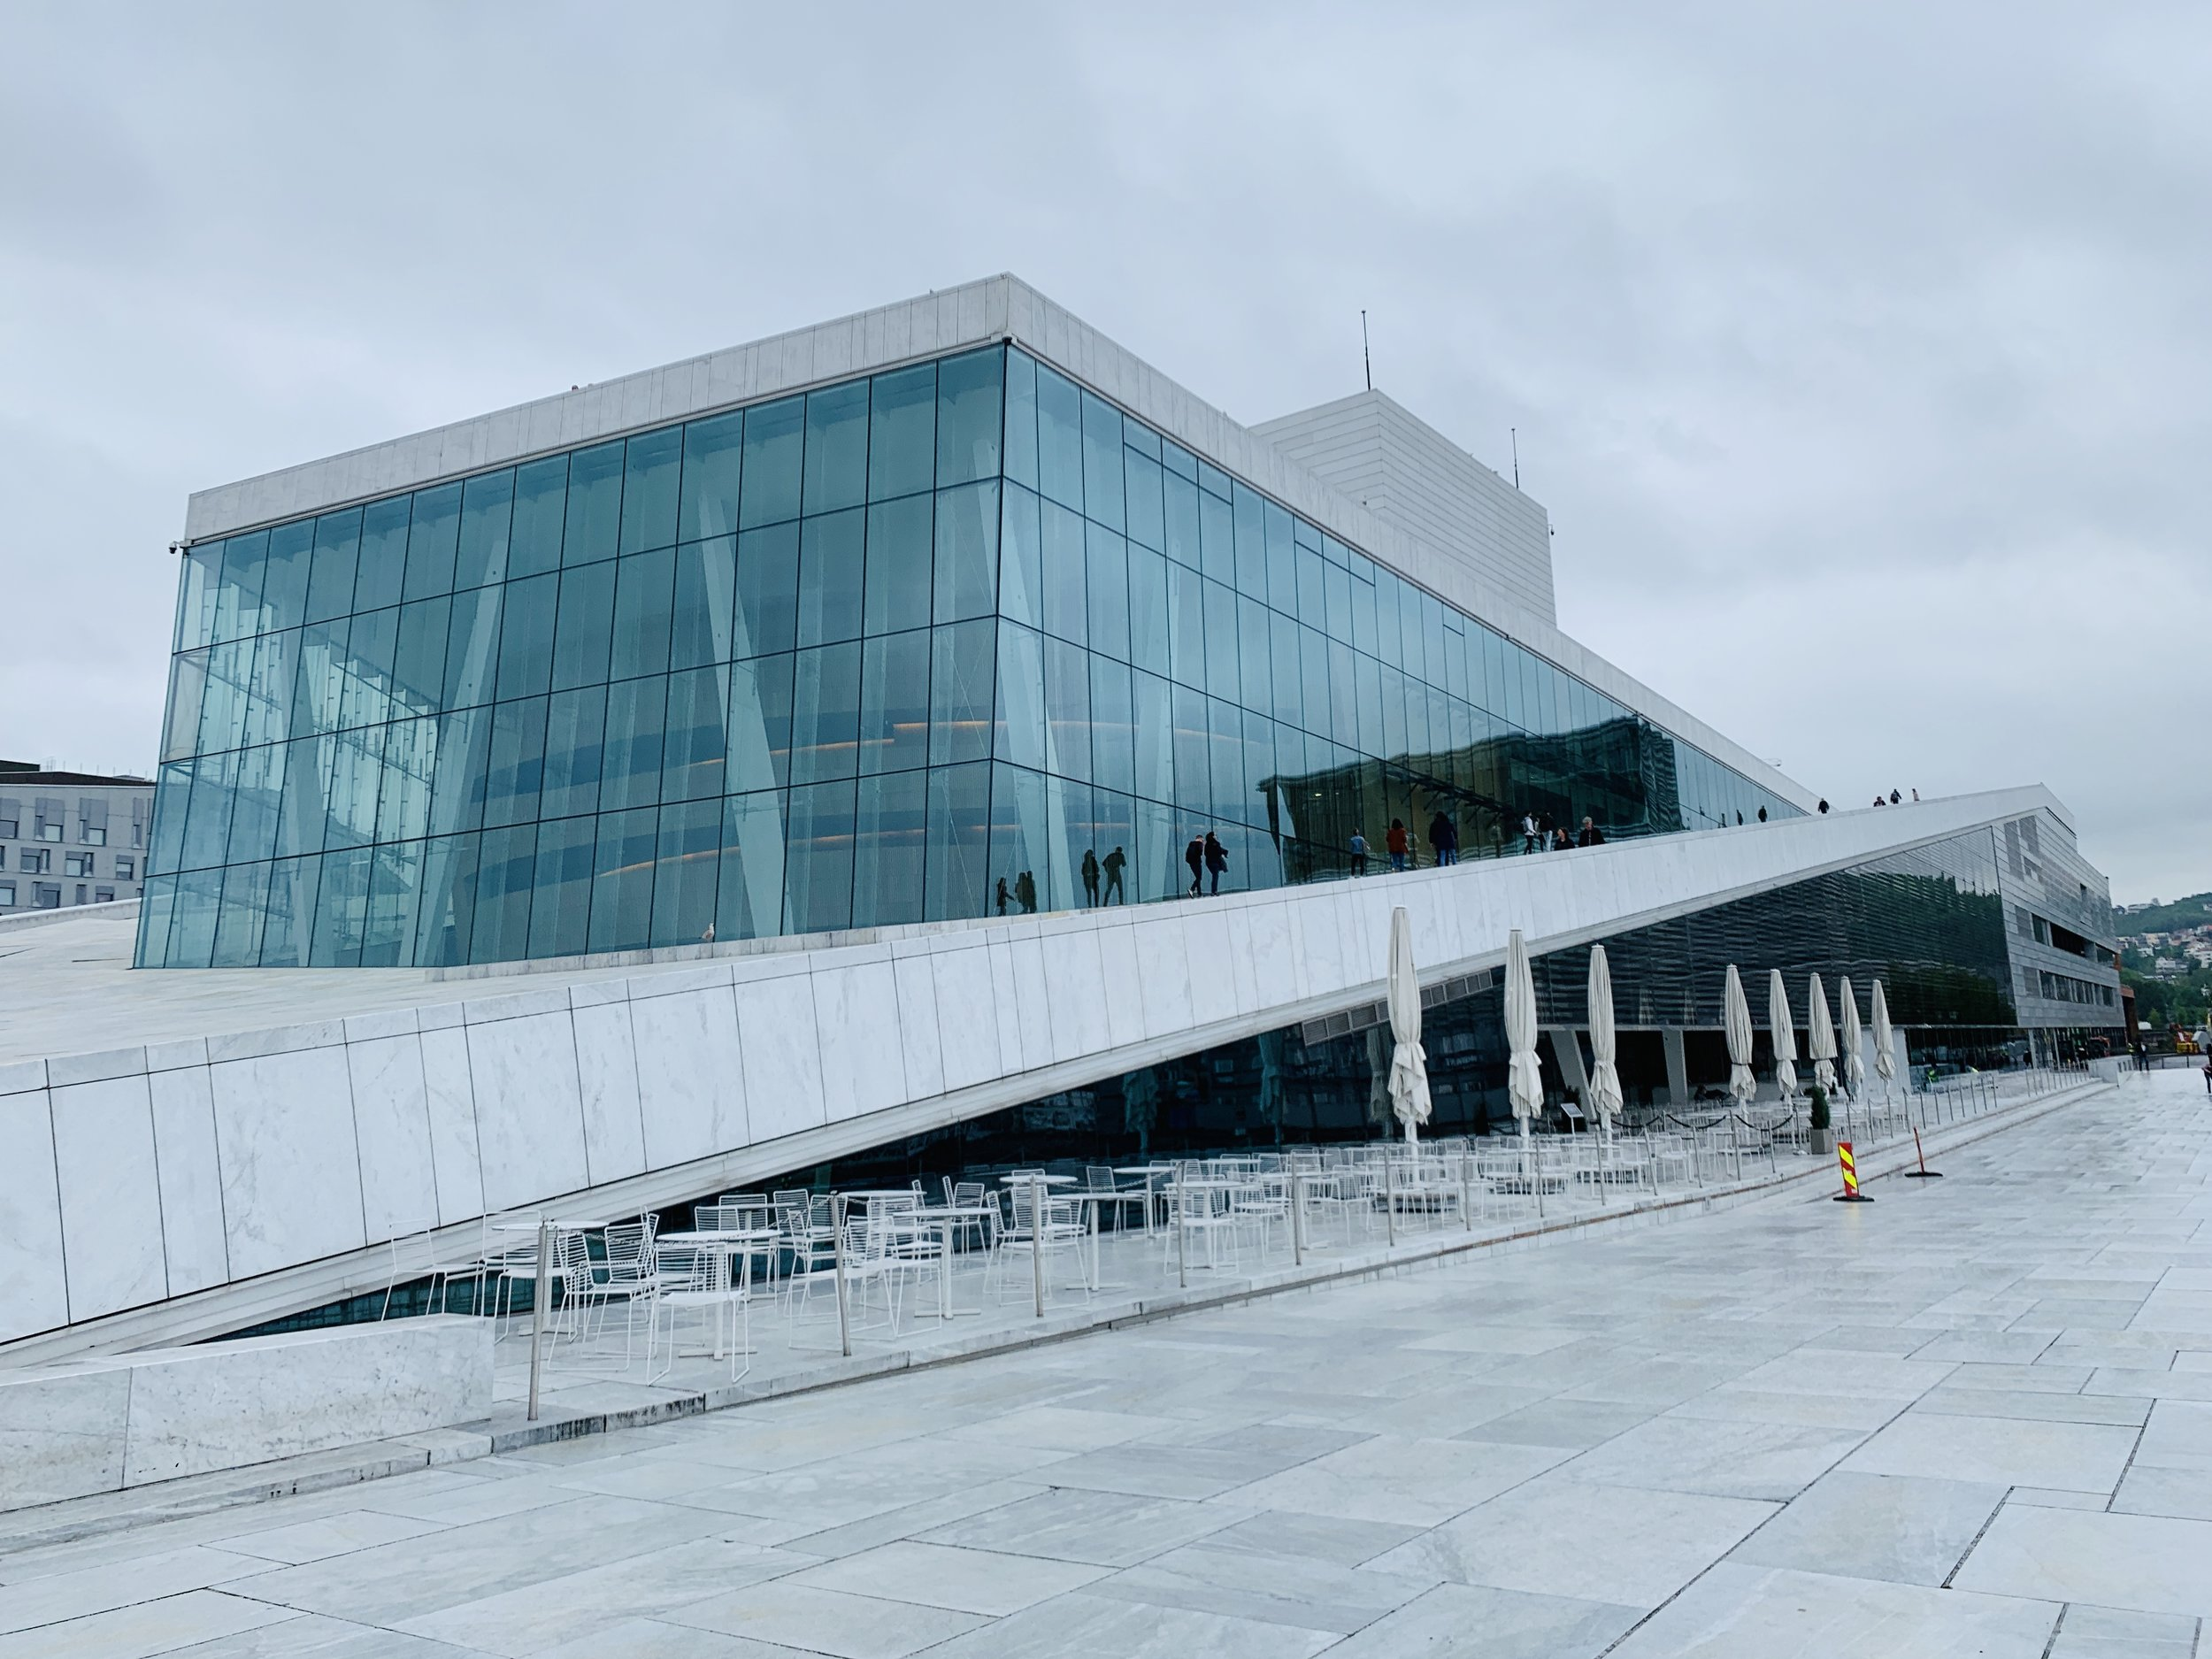 Oslo Opera House: glacier inspired architecture